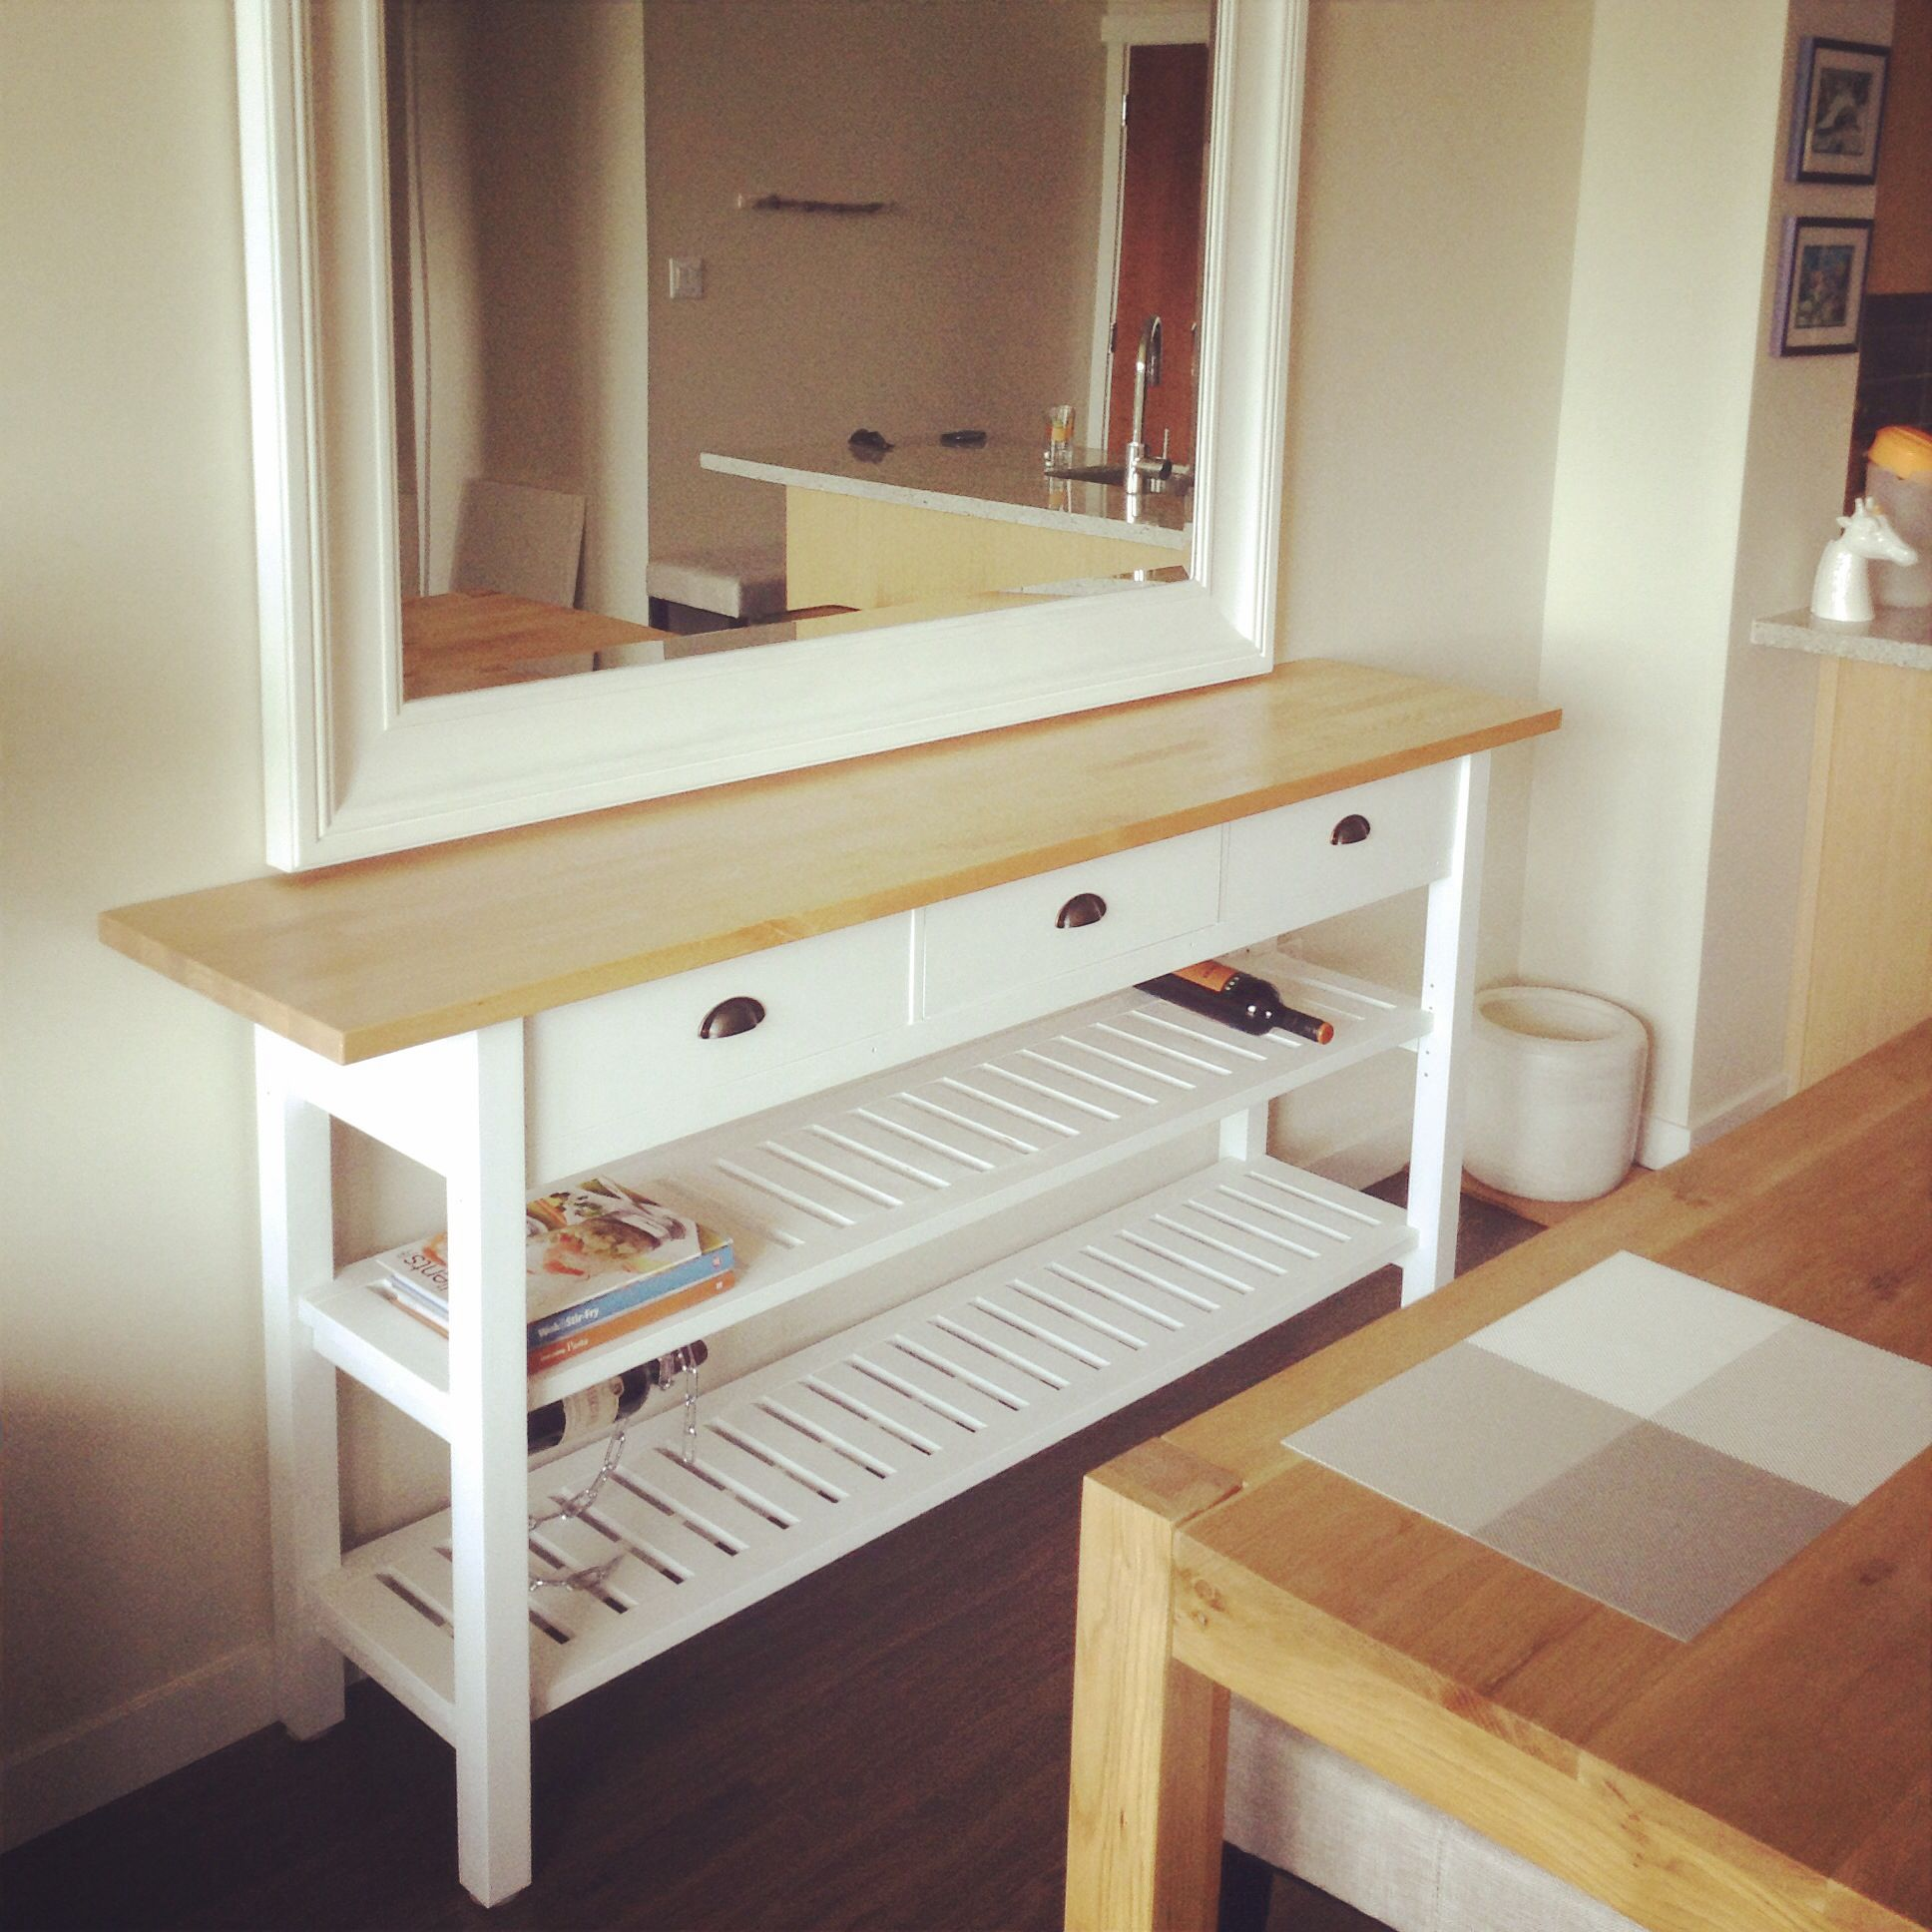 superior Norden Table Hack Part - 8: Beautiful IKEA Norden Sidetable hack if I do say so myself. #DIY #Craft